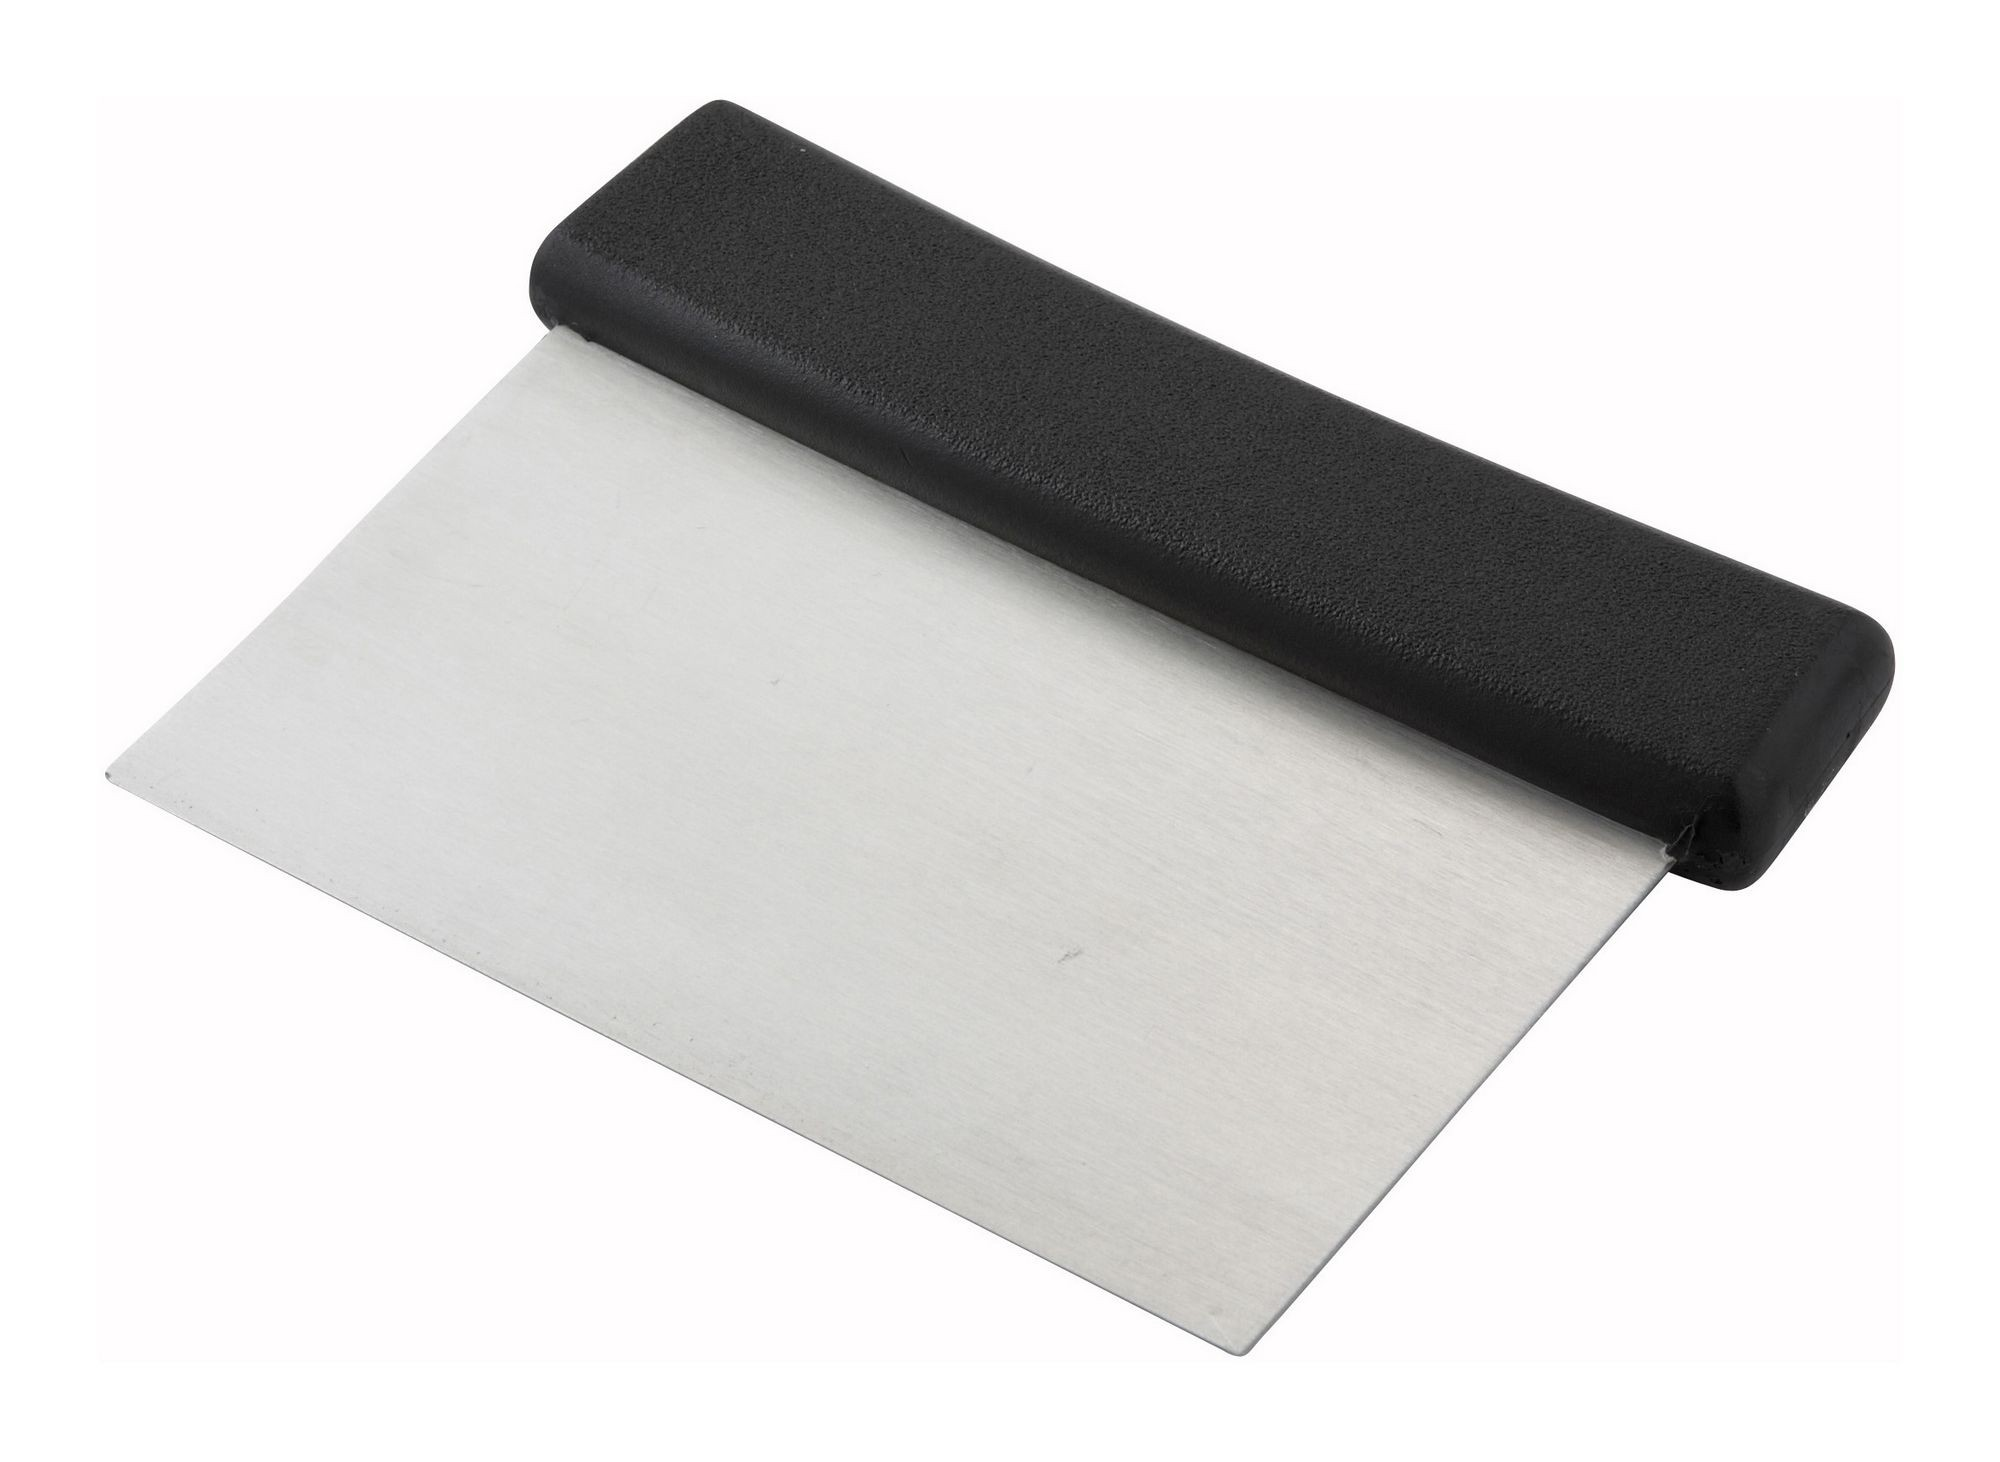 Stainless Steel Dough Scraper with Plastic Handle